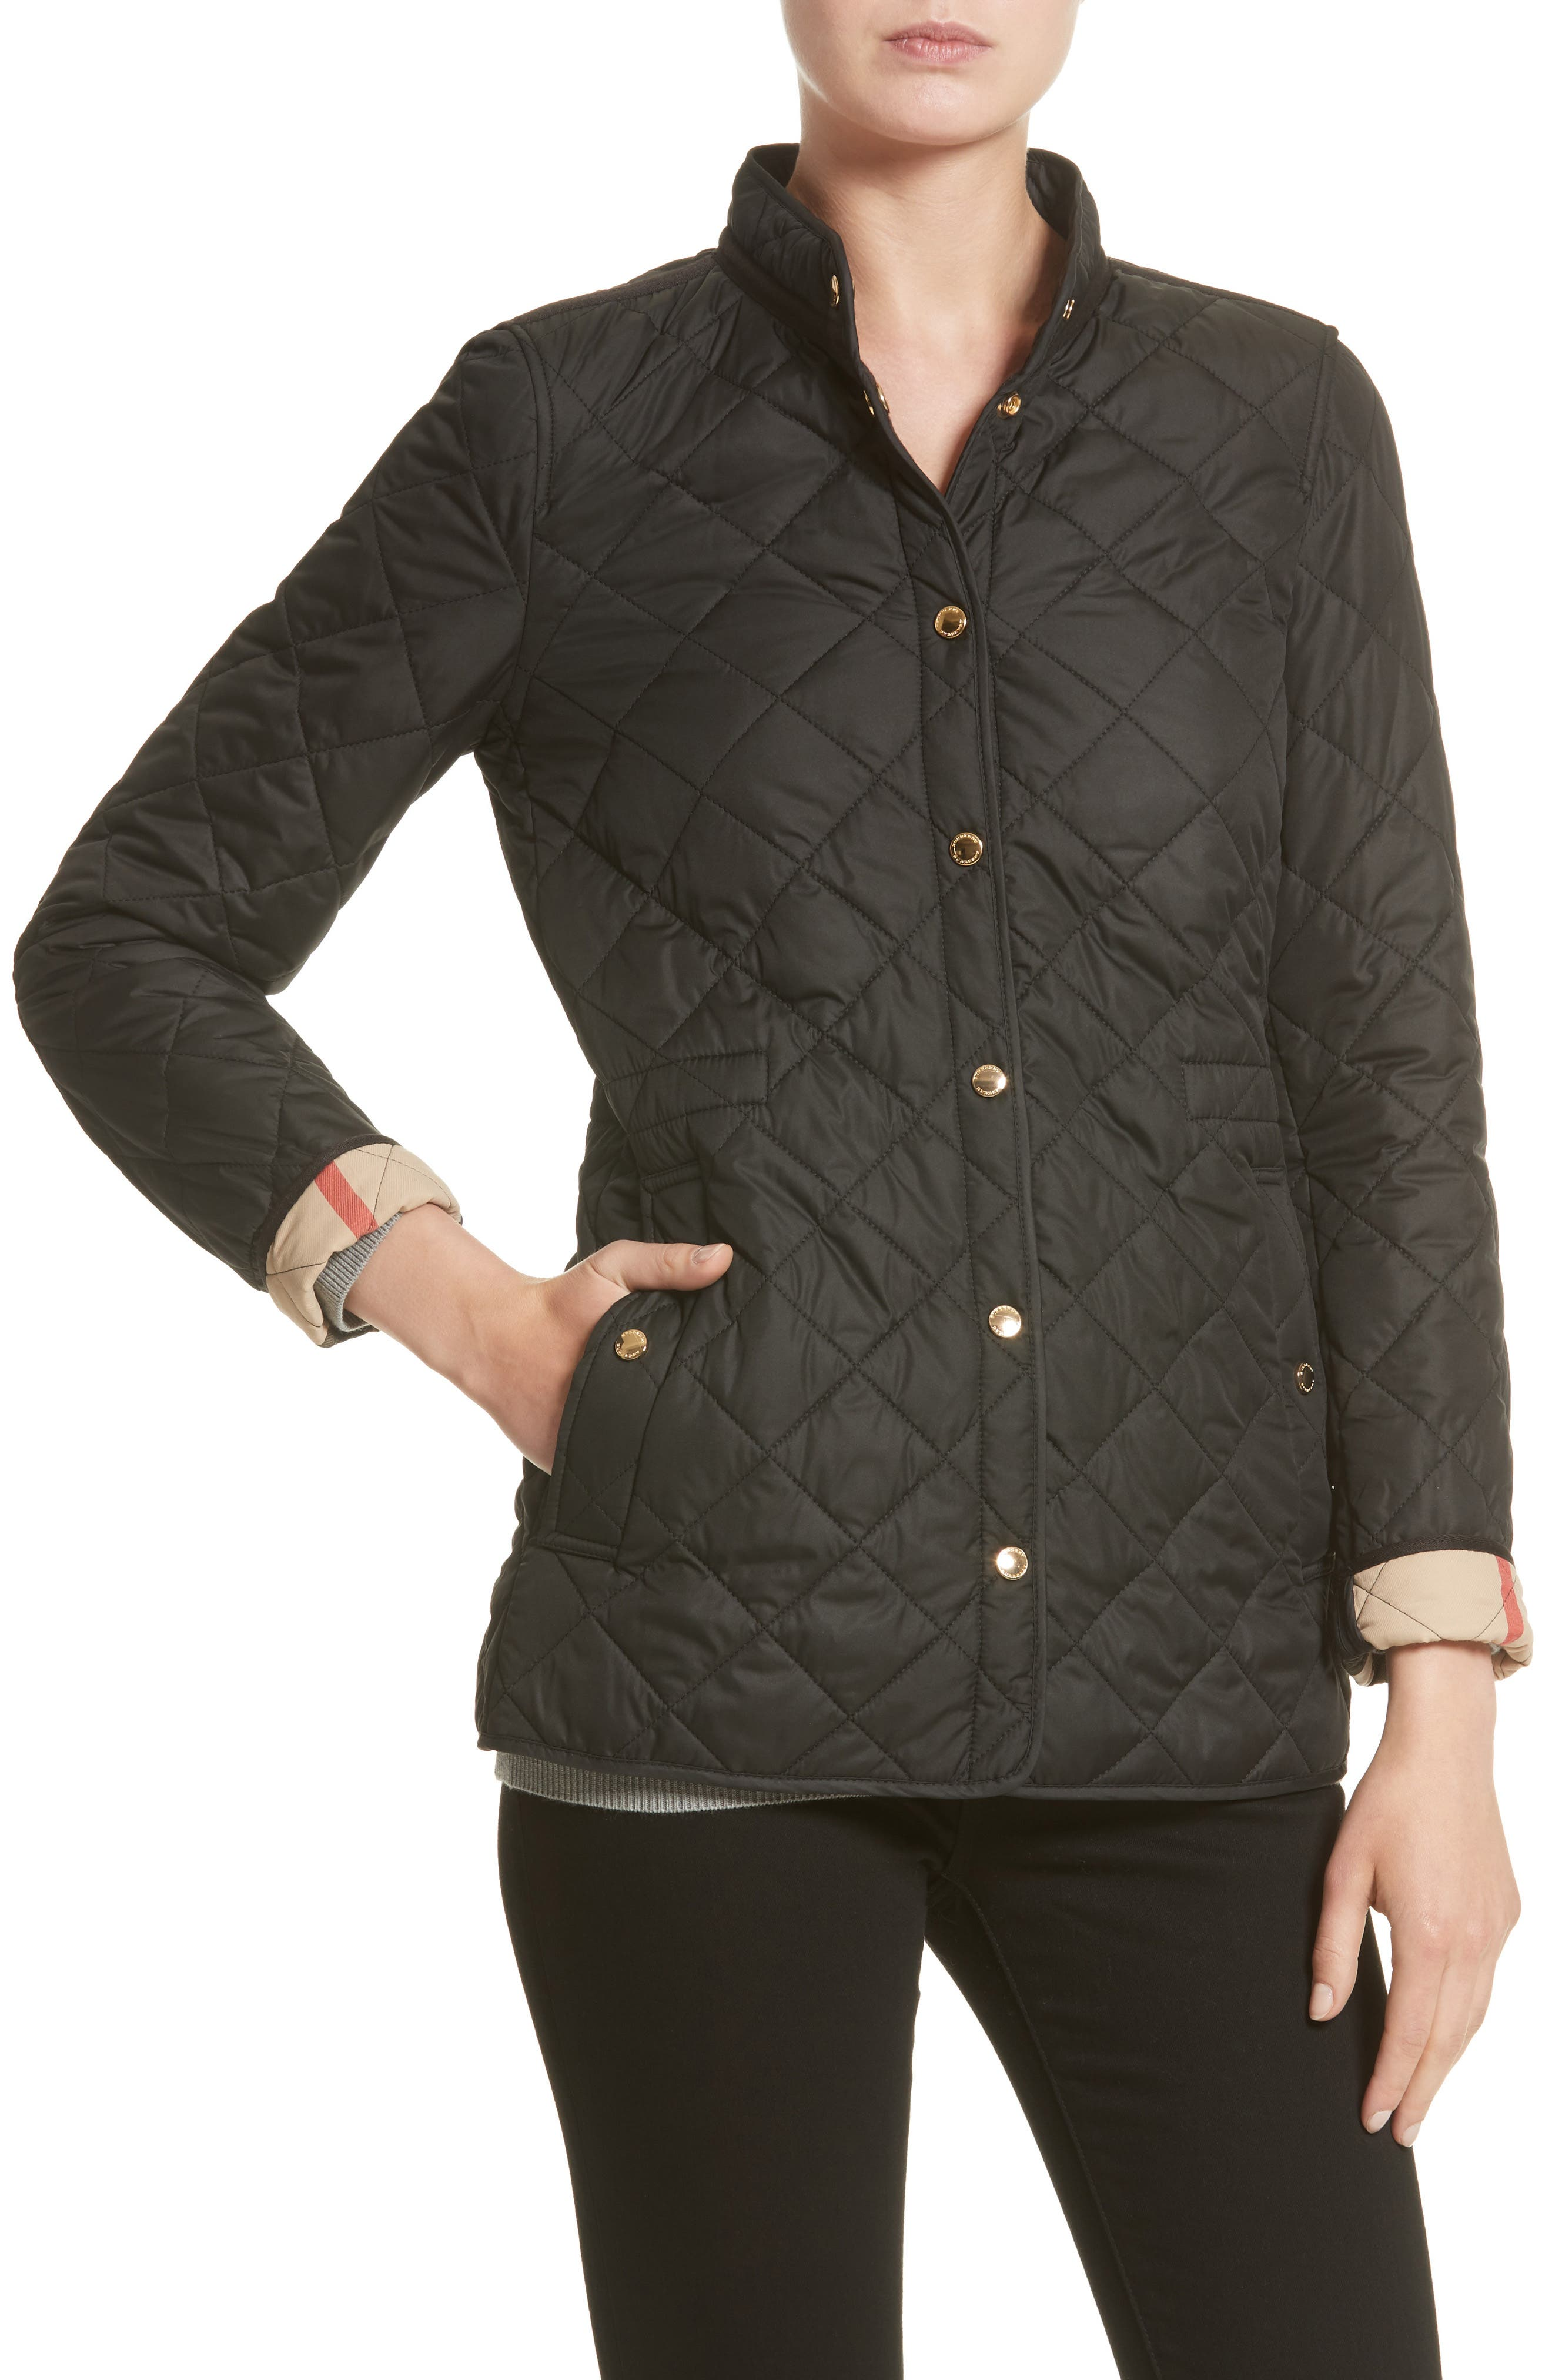 Pensham Quilted Jacket,                             Alternate thumbnail 4, color,                             001